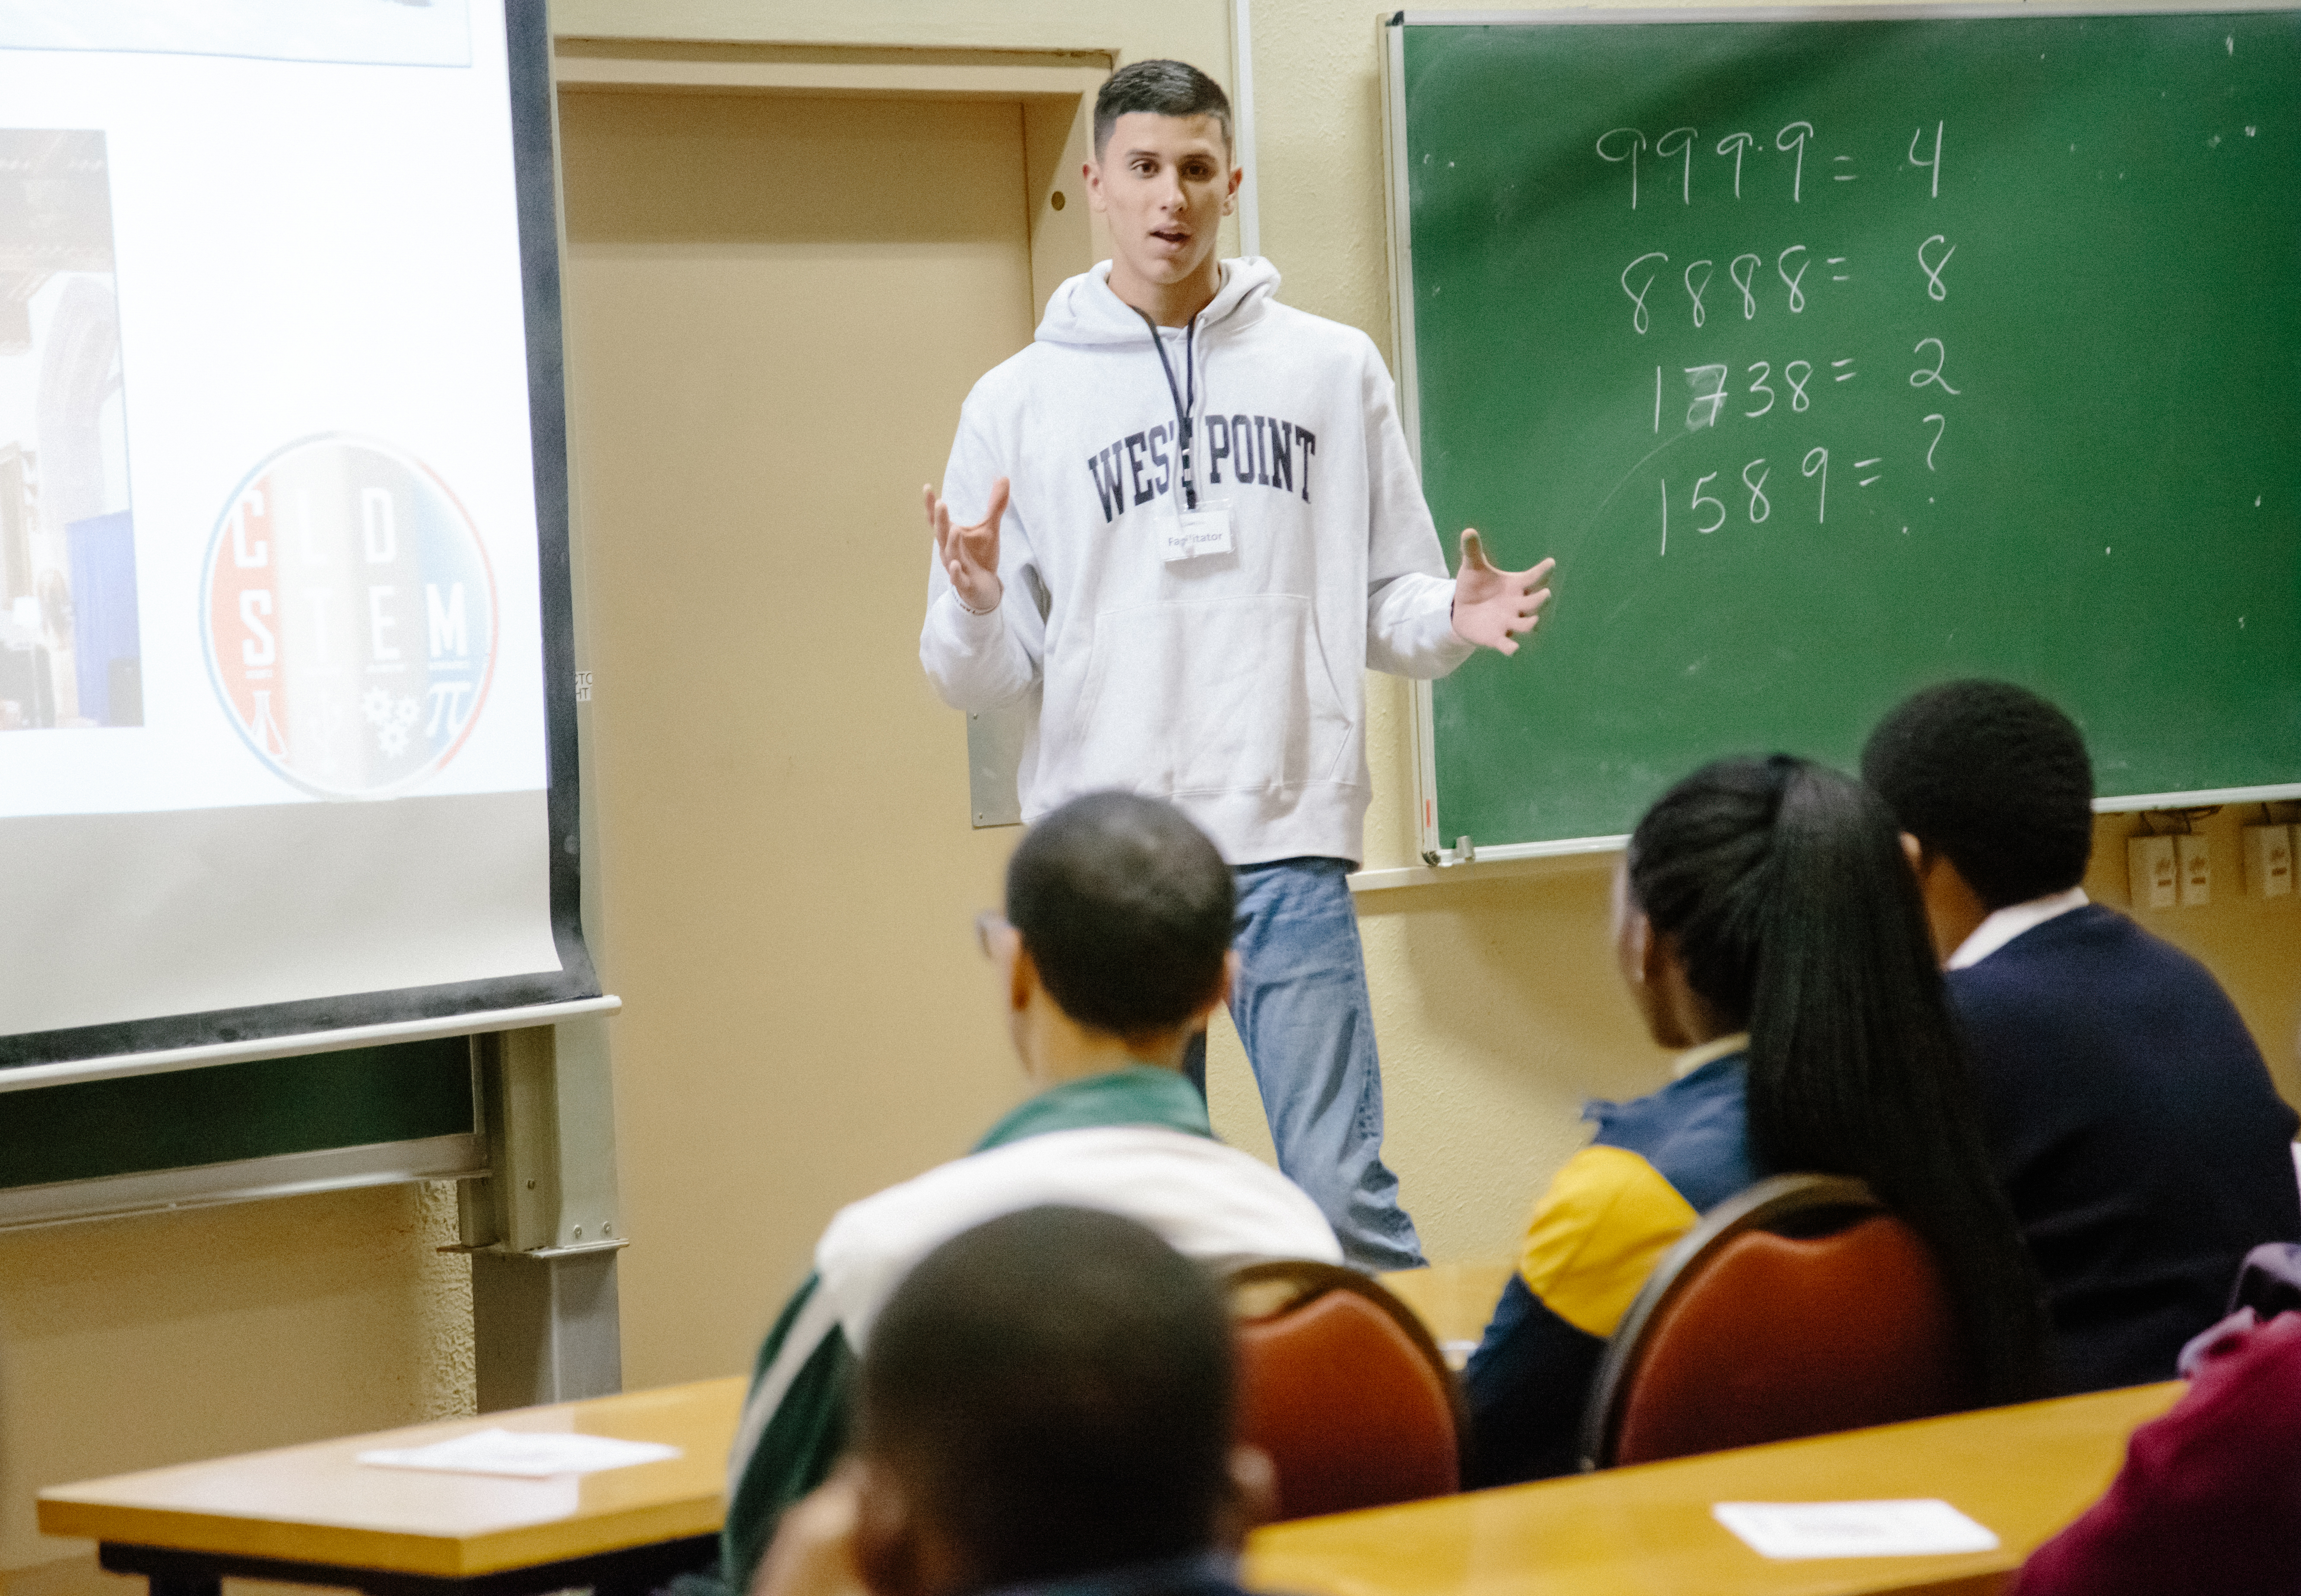 U.S. Military Academy Cadet Matthew Rivera provides an overview of the education programs offered at West Point to South African students in order to promote Science, Technology, Engineering and Math (STEM) education as part of the U.S. Africa Command outreach efforts with the African Institute for Mathematical Sciences in Muizenberg, South Africa, June 25, 2018. Rivera was joined by fellow Cadet Patrick Cowan and Mathematics Professor Dr. Samuel Ivy to help facilitate learning and foster confidence in STEM for the African students. (Photo courtesy Yasmin Hankel, AIMS Media Specialist)